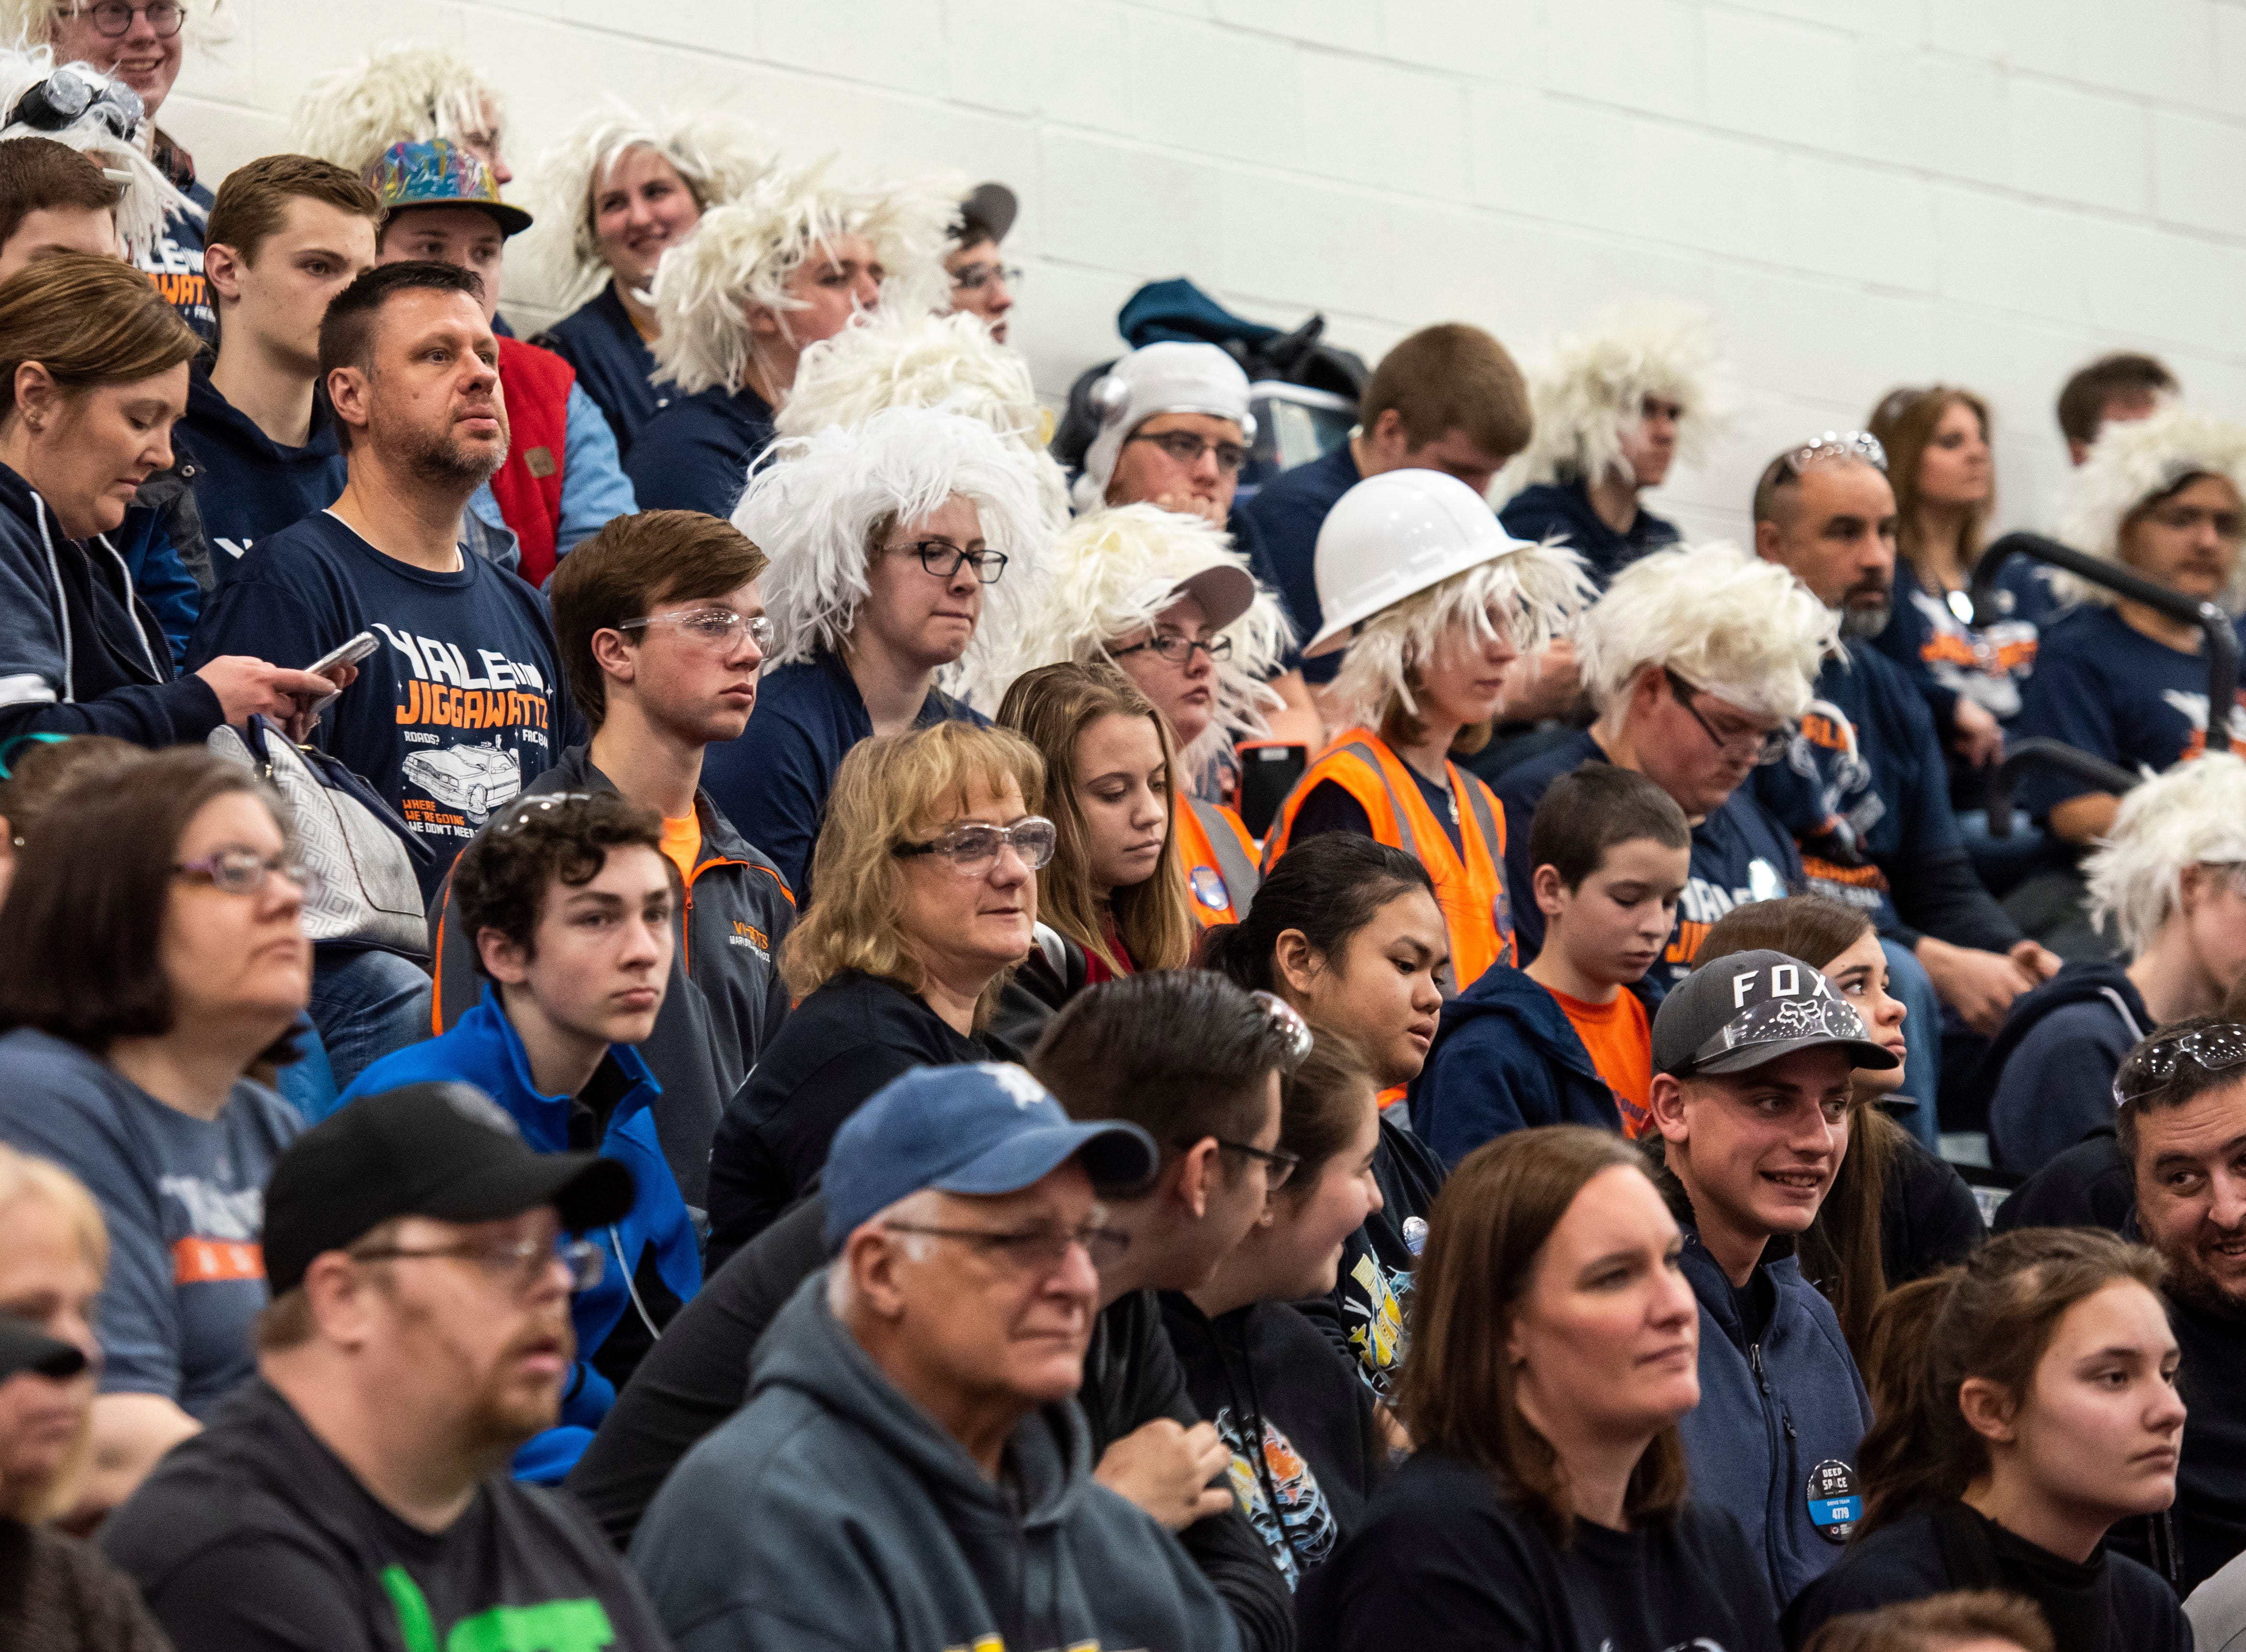 Spectators cheer from the stands during the FIRST Robotics district event Friday, March 29, 2019 at Marysville High School. About 40 robotics teams came to compete in the fourth annual event.